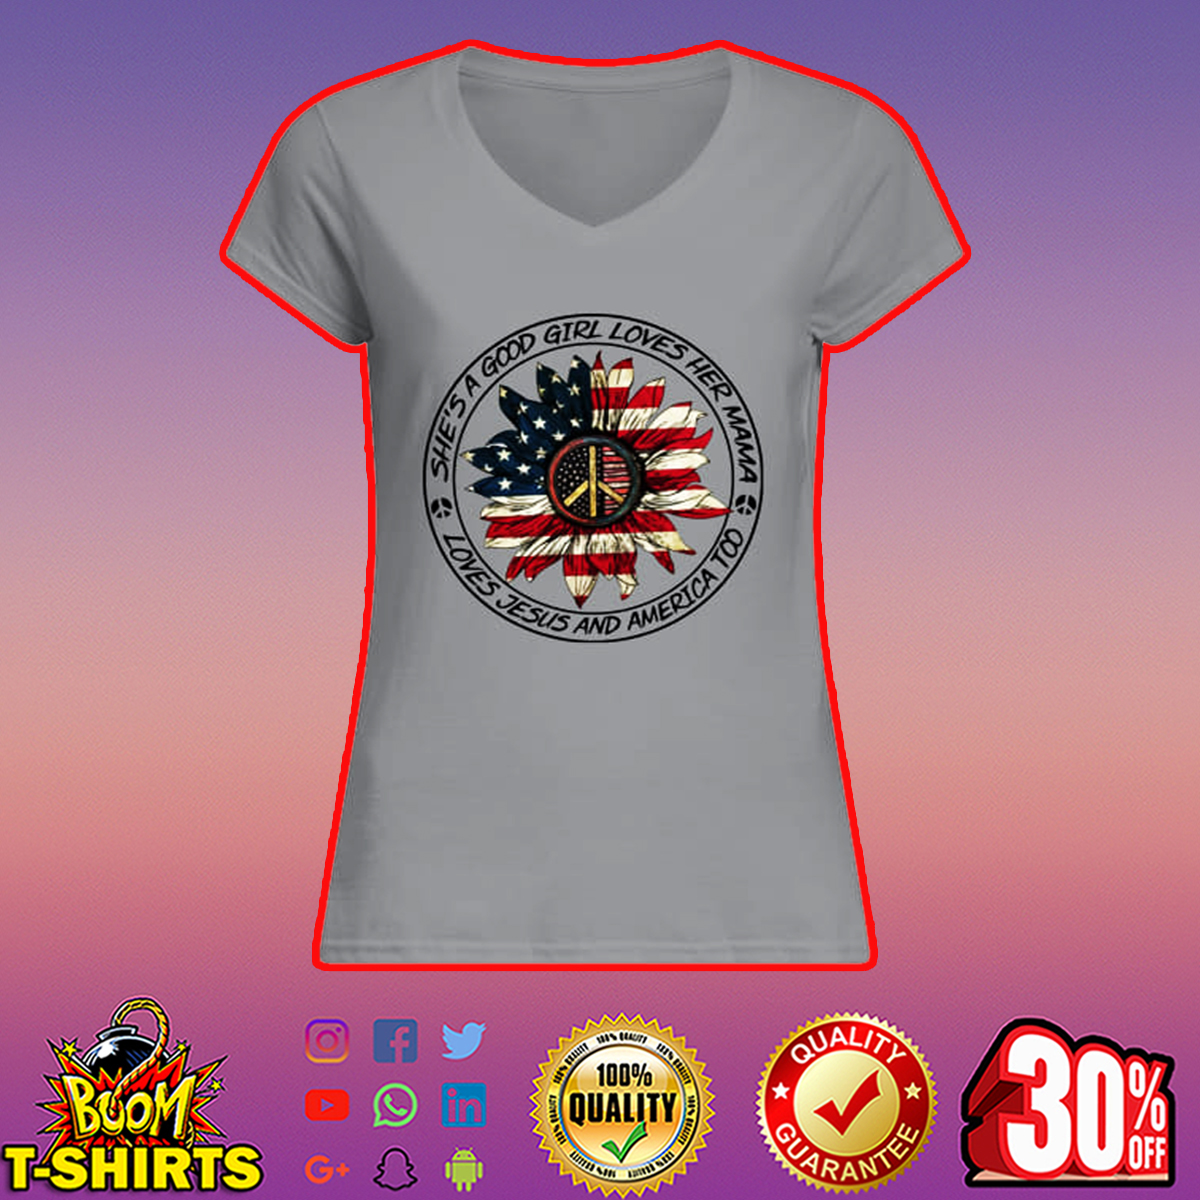 She's a good girl loves her mama loves jesus and america too 4th of July v-neck t-shirt